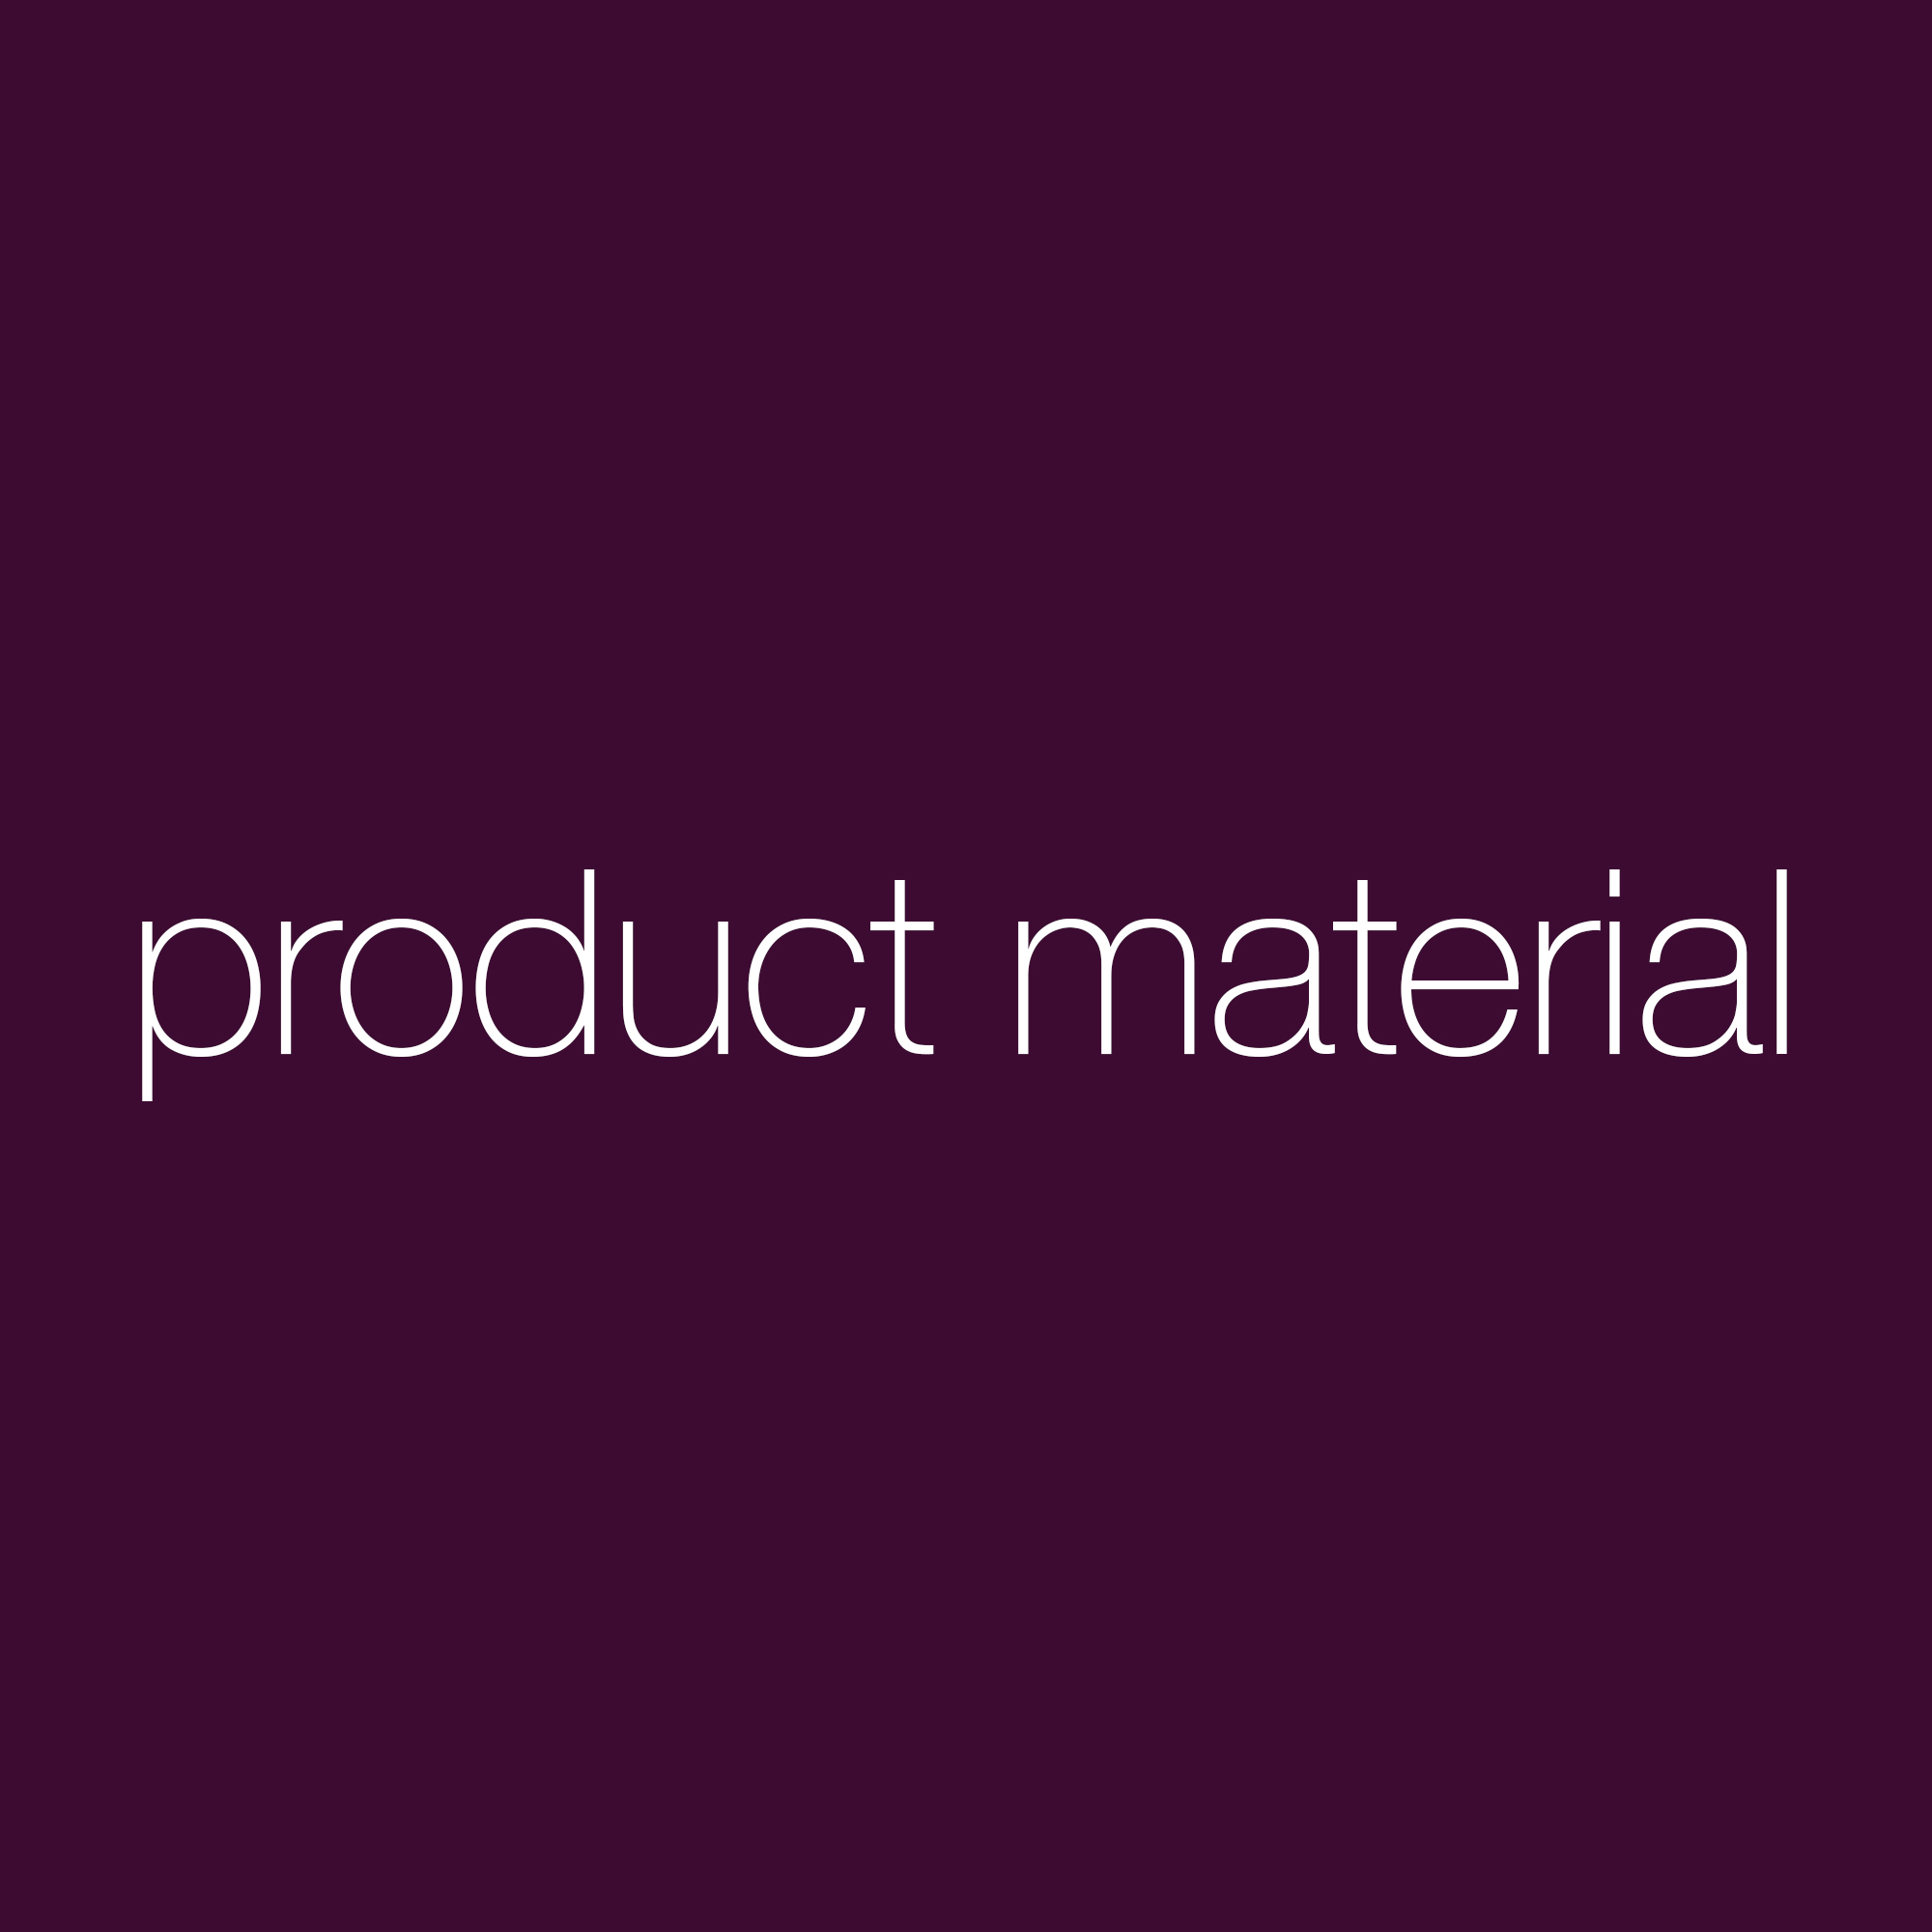 sidebar-icon-attribute-product-material